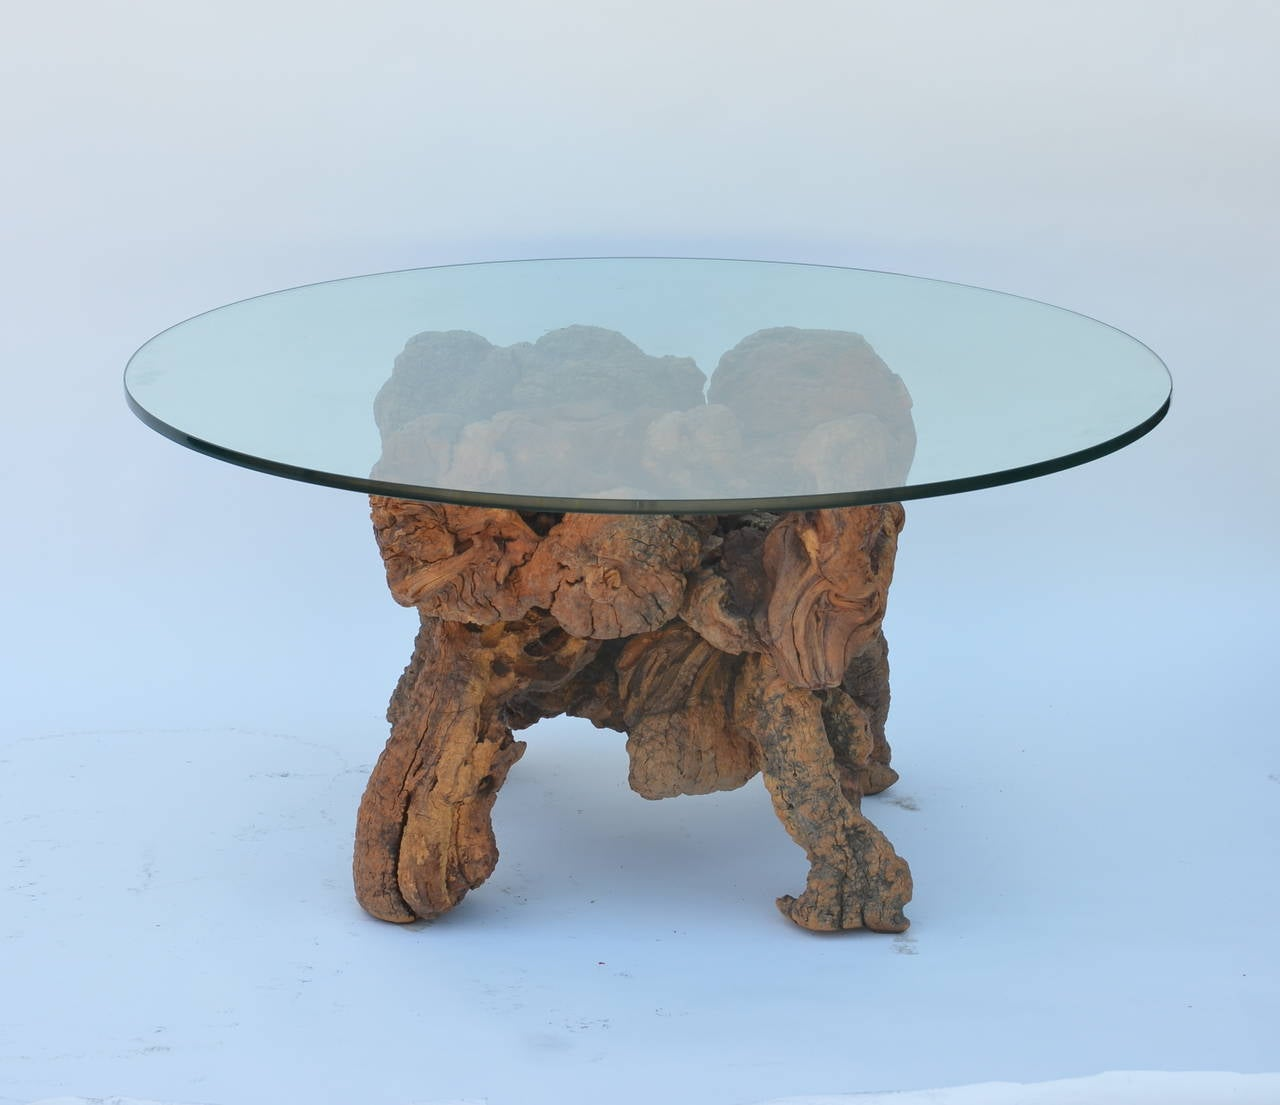 organic modern quadripod bog wood and glass coffee table for sale  - organic modern quadripod bog wood and glass coffee table